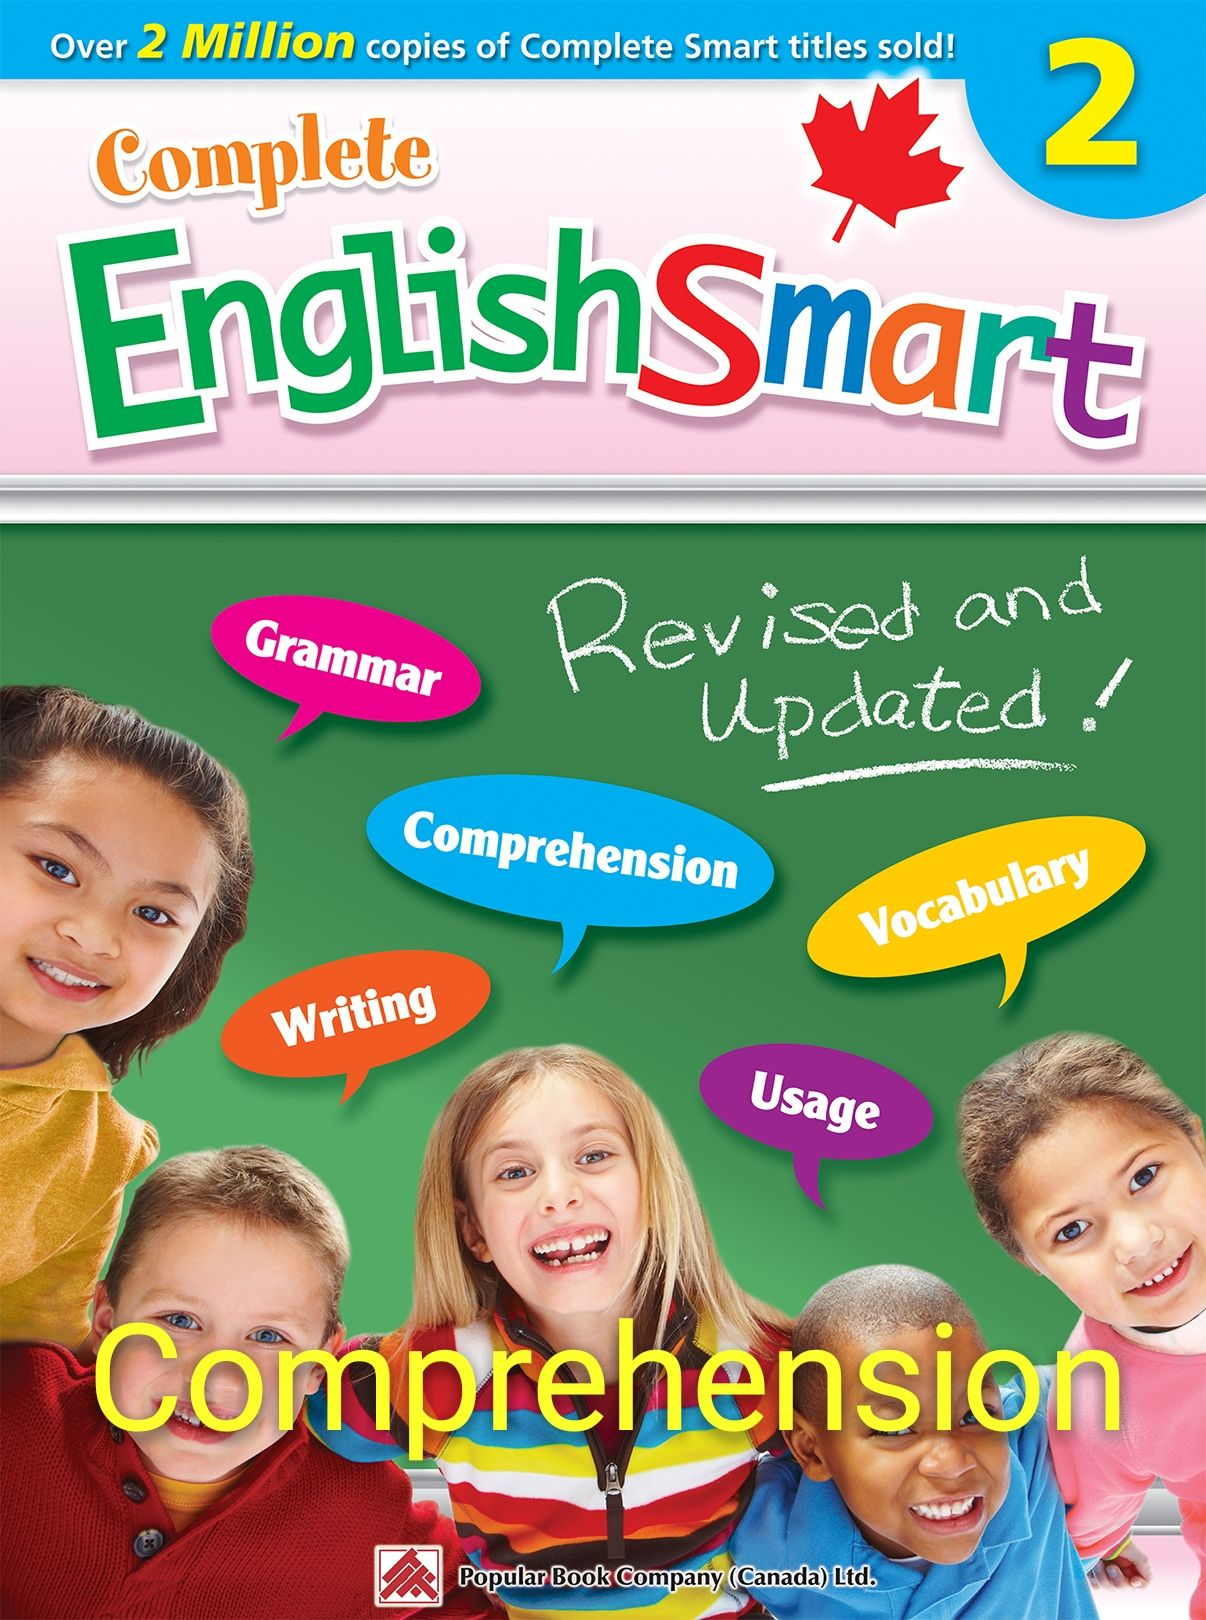 Head Over To Our Facebook Page To Check Out The Free Sample Worksheets Available For